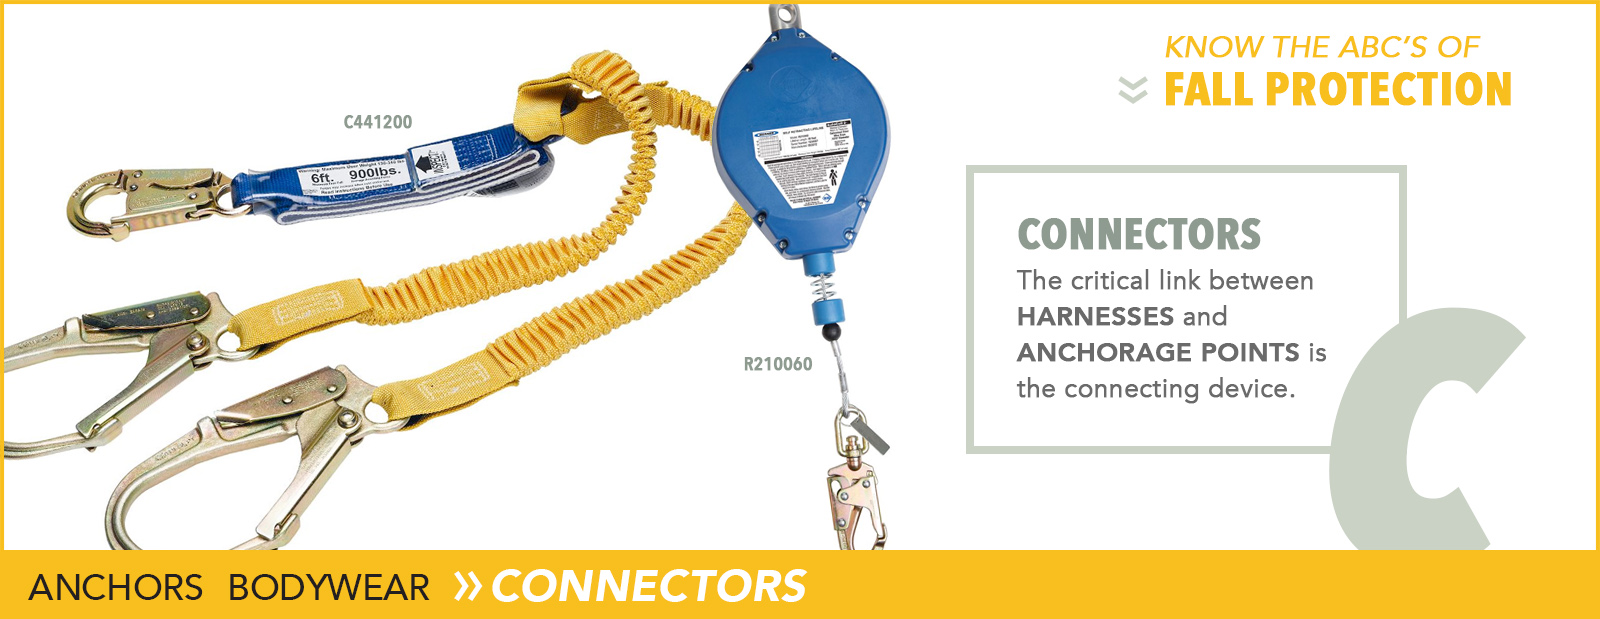 Fall Protection Connectors